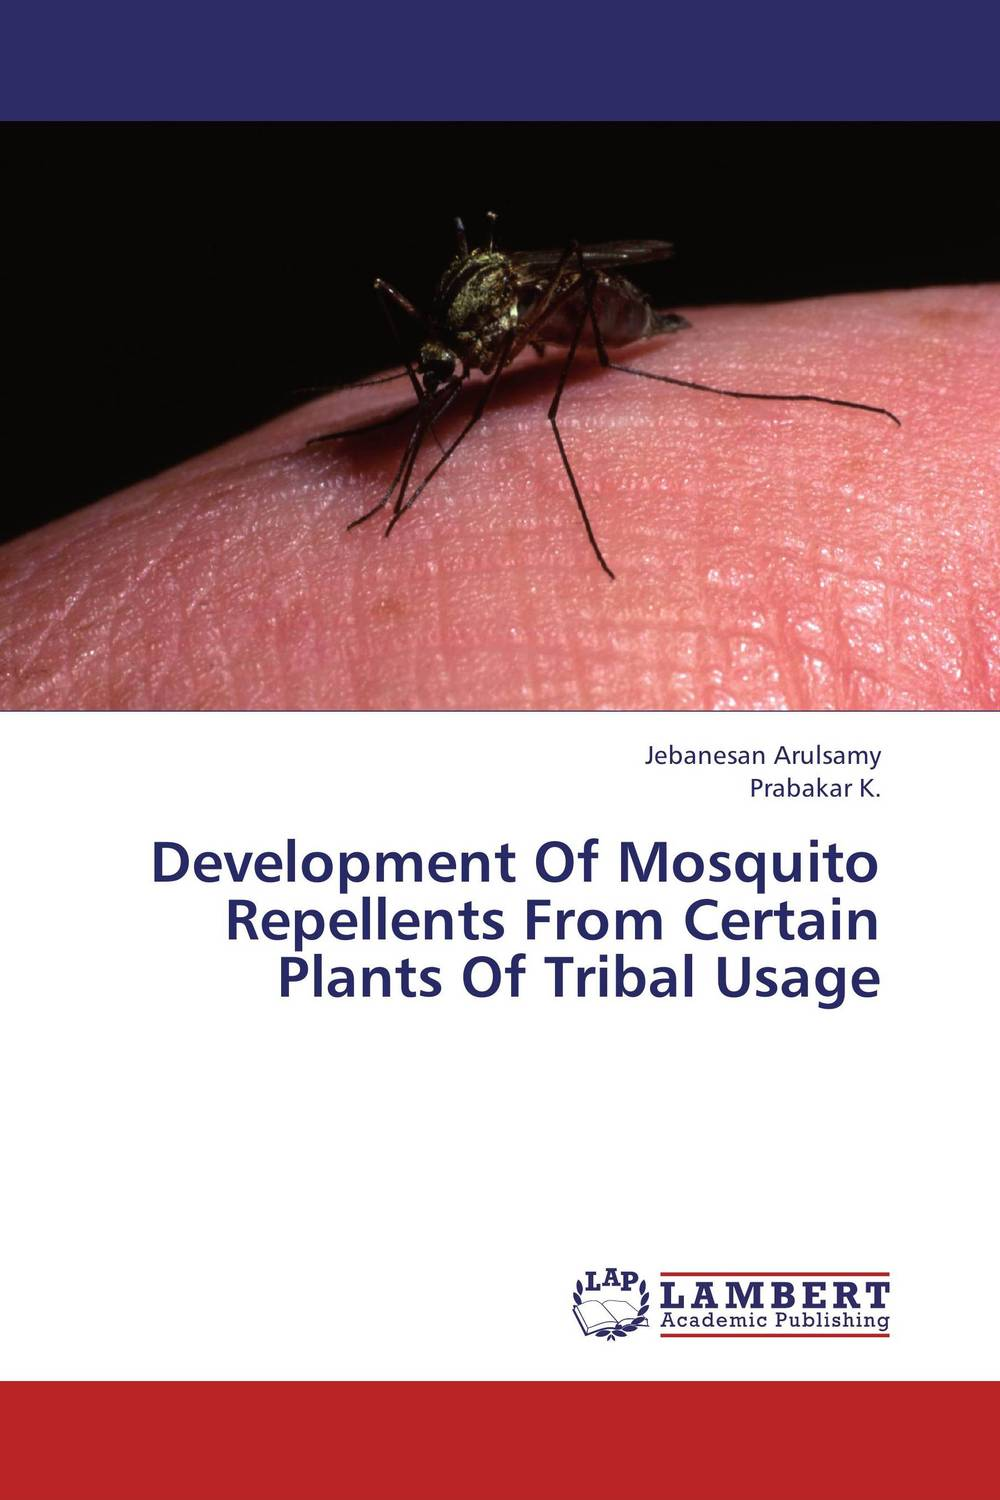 Development Of Mosquito Repellents From Certain Plants Of Tribal Usage puthamohan vinayaga moorthi chelliah balasubramanian and afrin larifa efficacy of trichoderma against vector mosquitoes